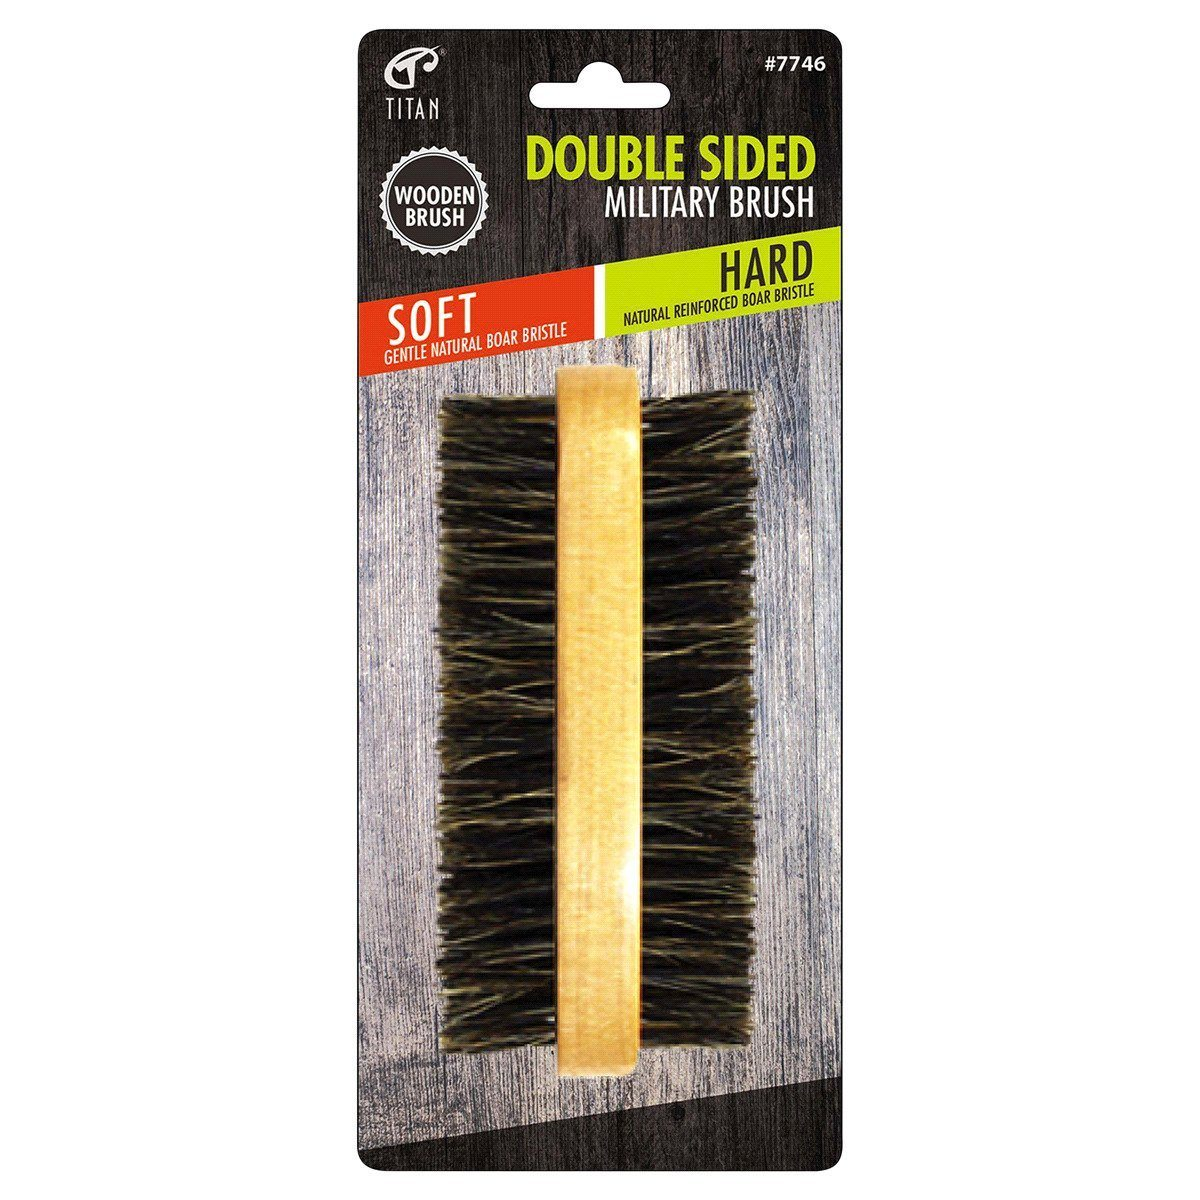 Titan Soft/Hard Double Sided Military Brush #7746 (12PC)